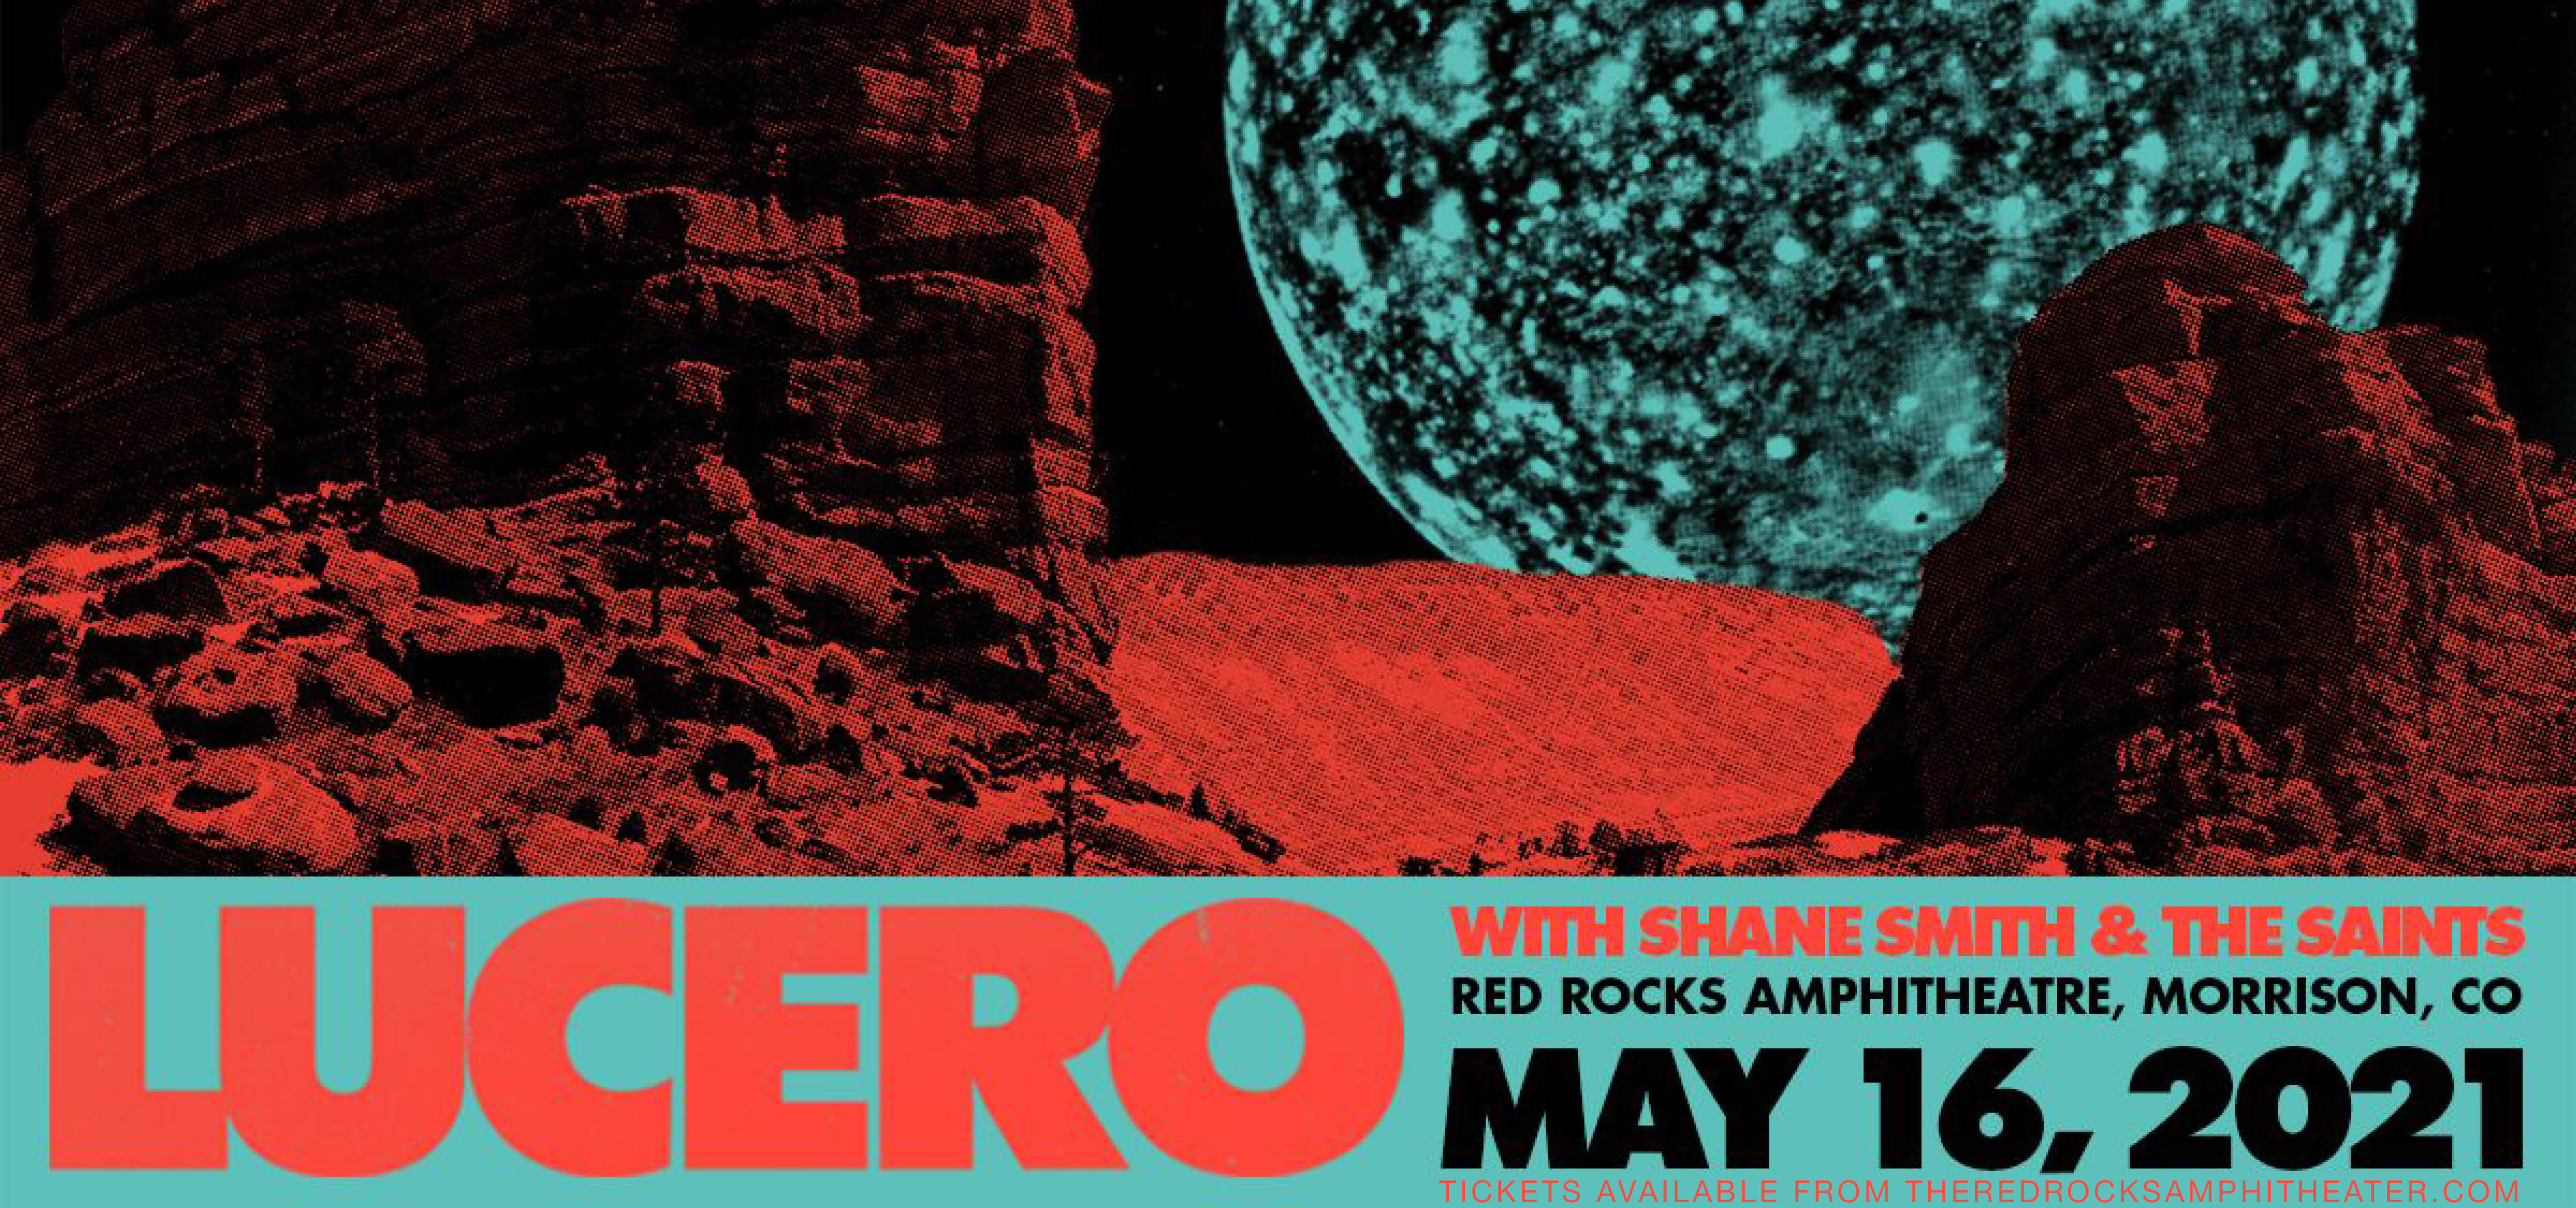 Lucero with Shane Smith and The Saints at Red Rocks Amphitheater